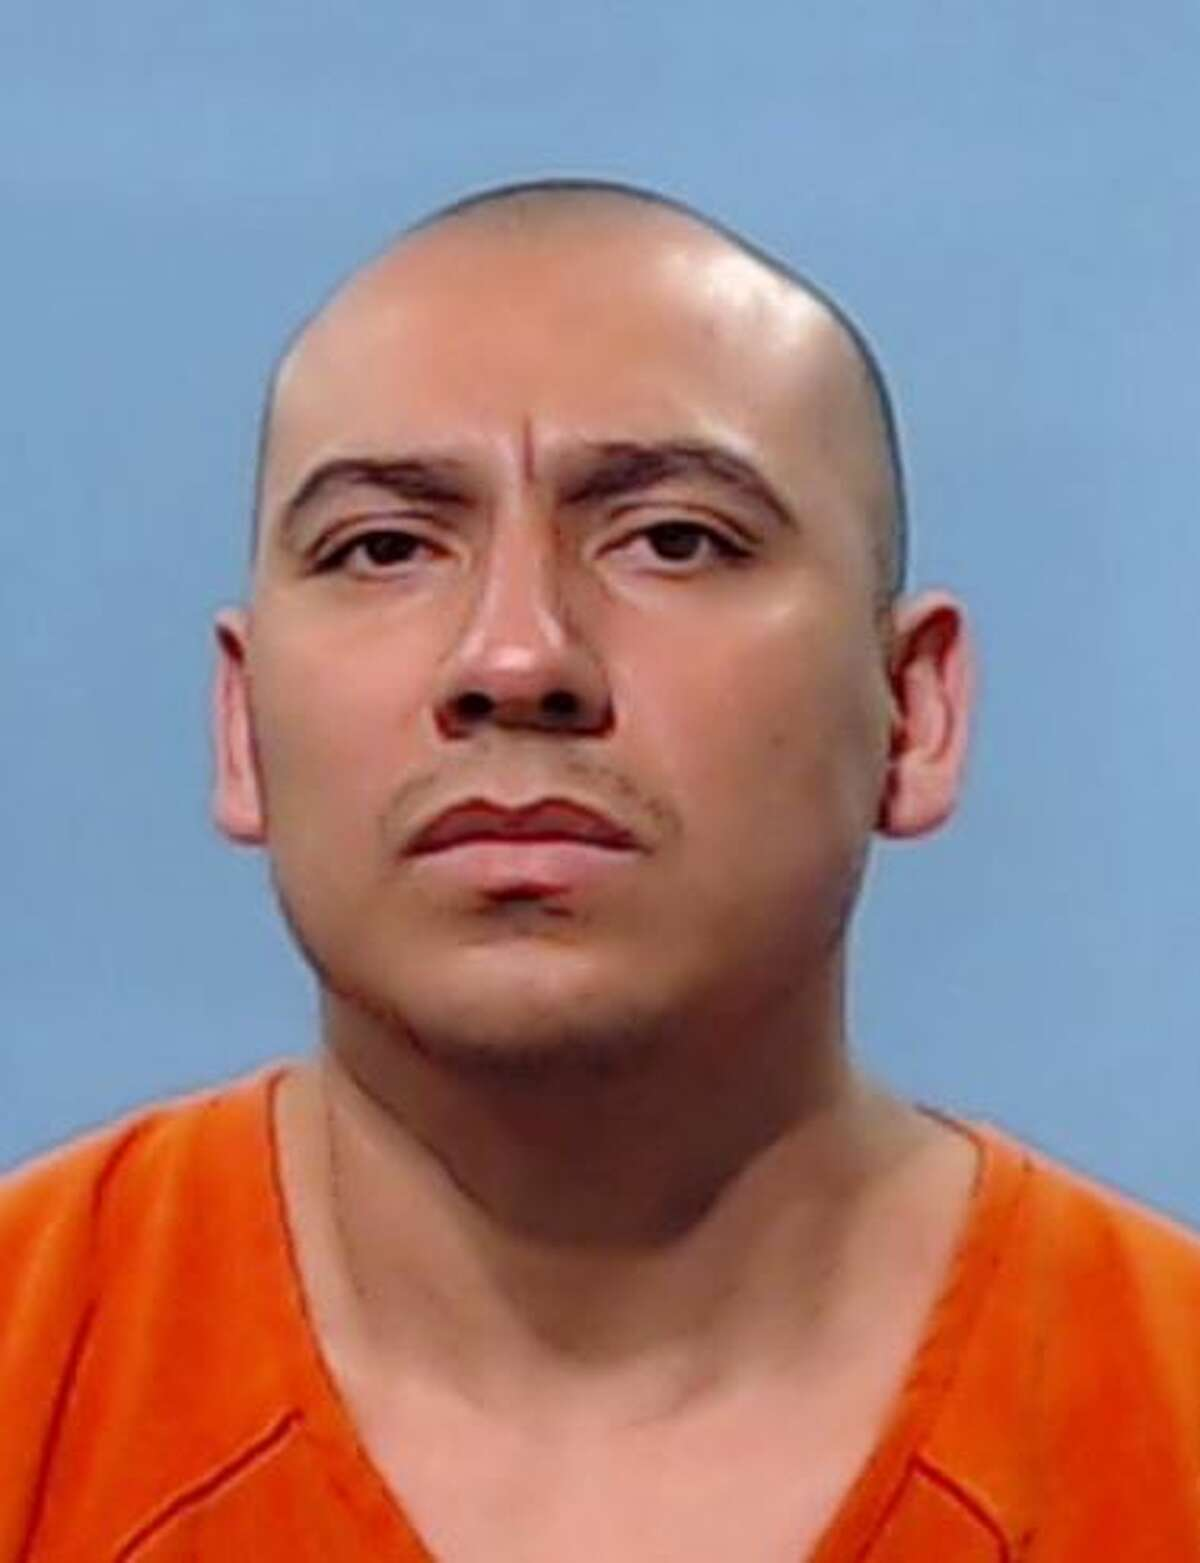 Angel Cartagena was charged with sexual assault.